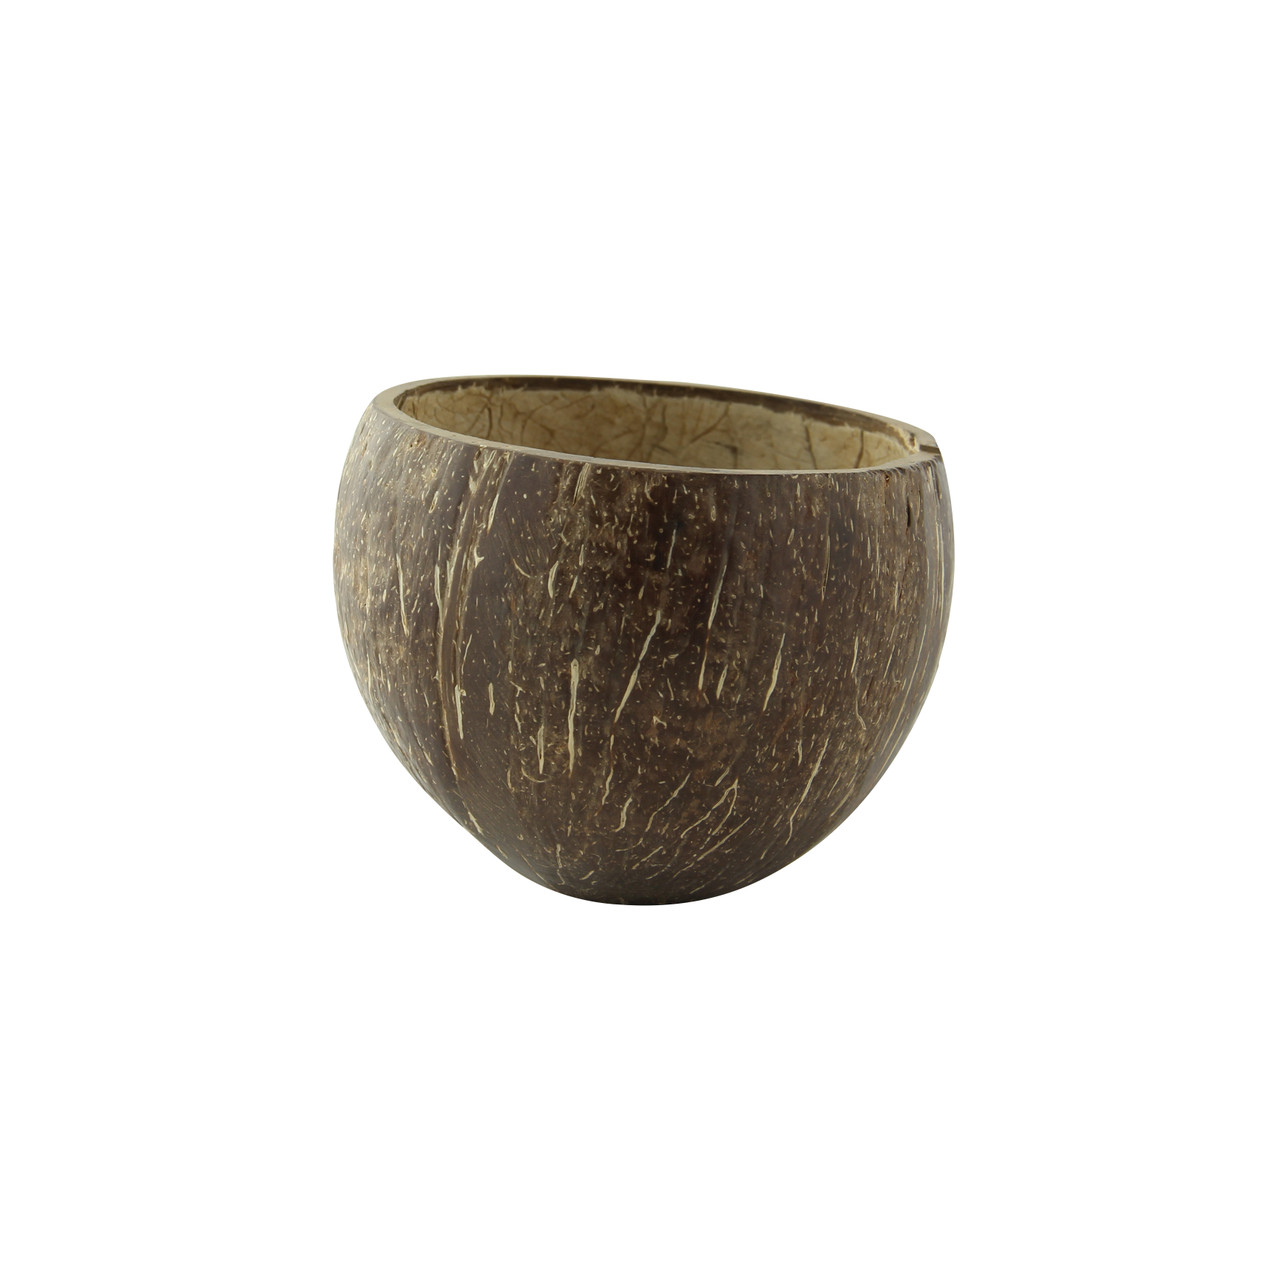 Round Coconut Bowl Without Polished -11.8-17oz Dia:3.4in H:2.85in